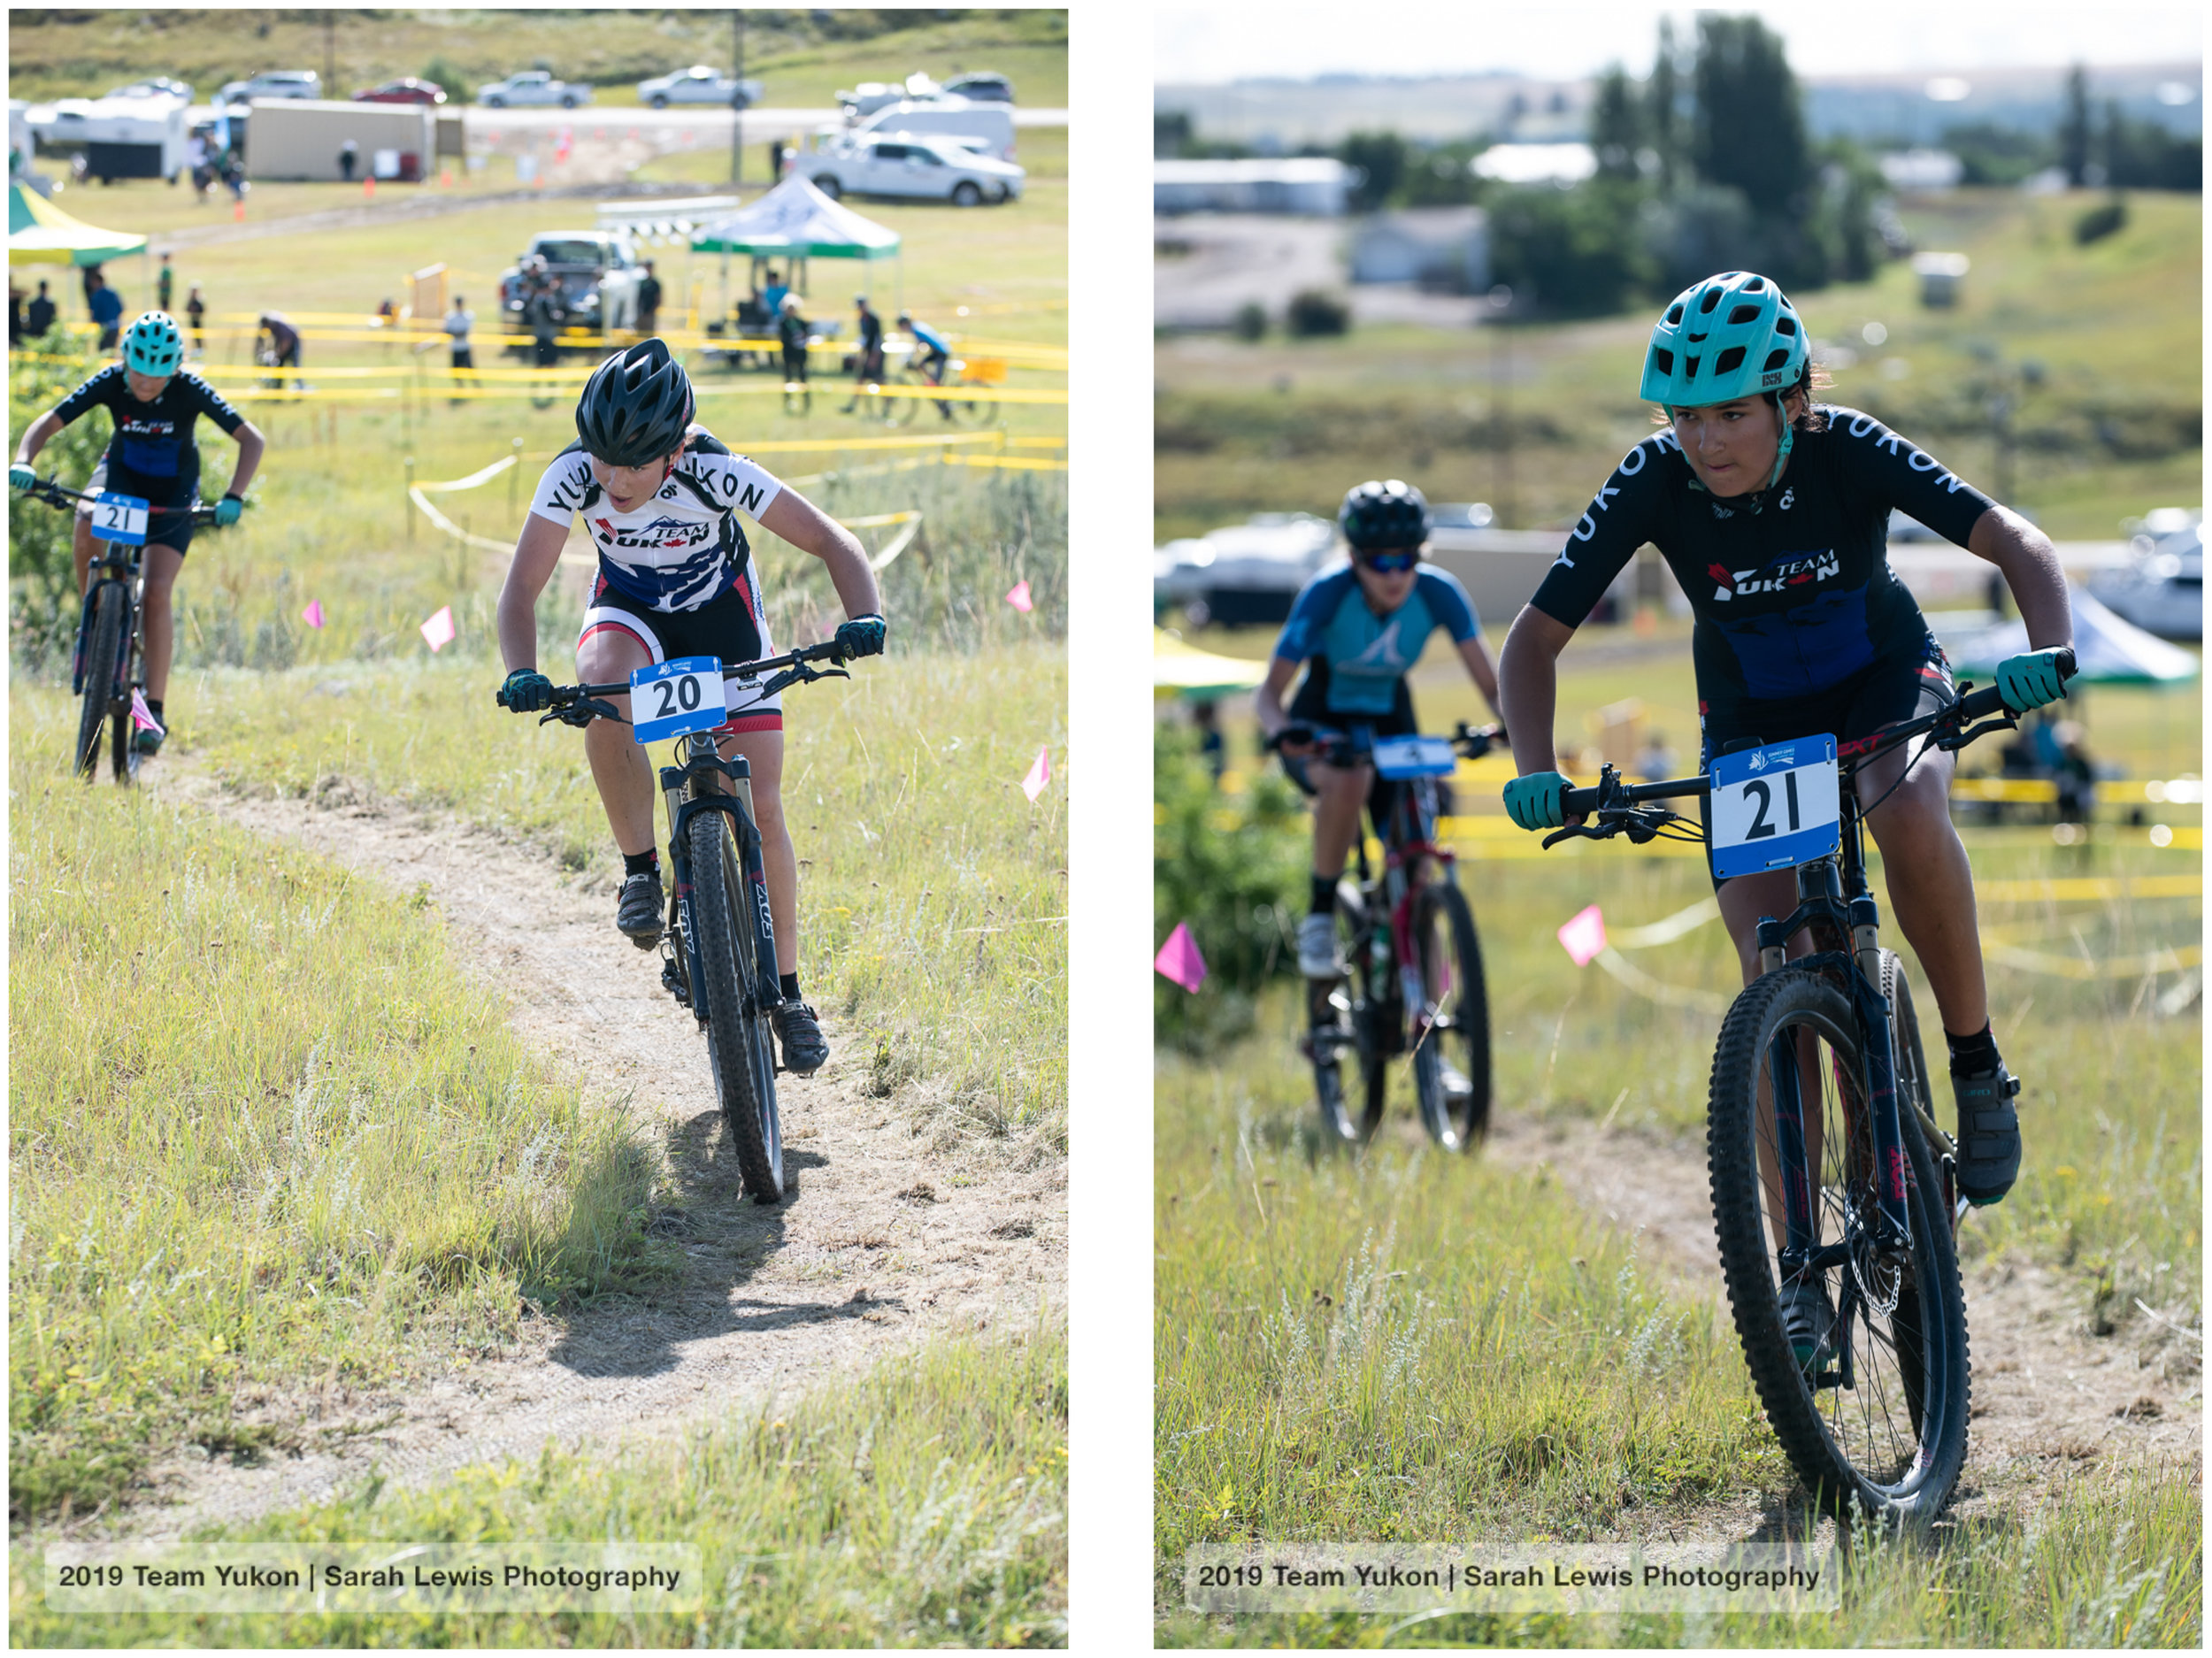 Mara lapping Mathilde (left). Mathilde racing strong to finish 15th (right)! She was the youngest racer out there (the field is from 15 to 19, but she had a special permission since she qualified at the preliminary events).